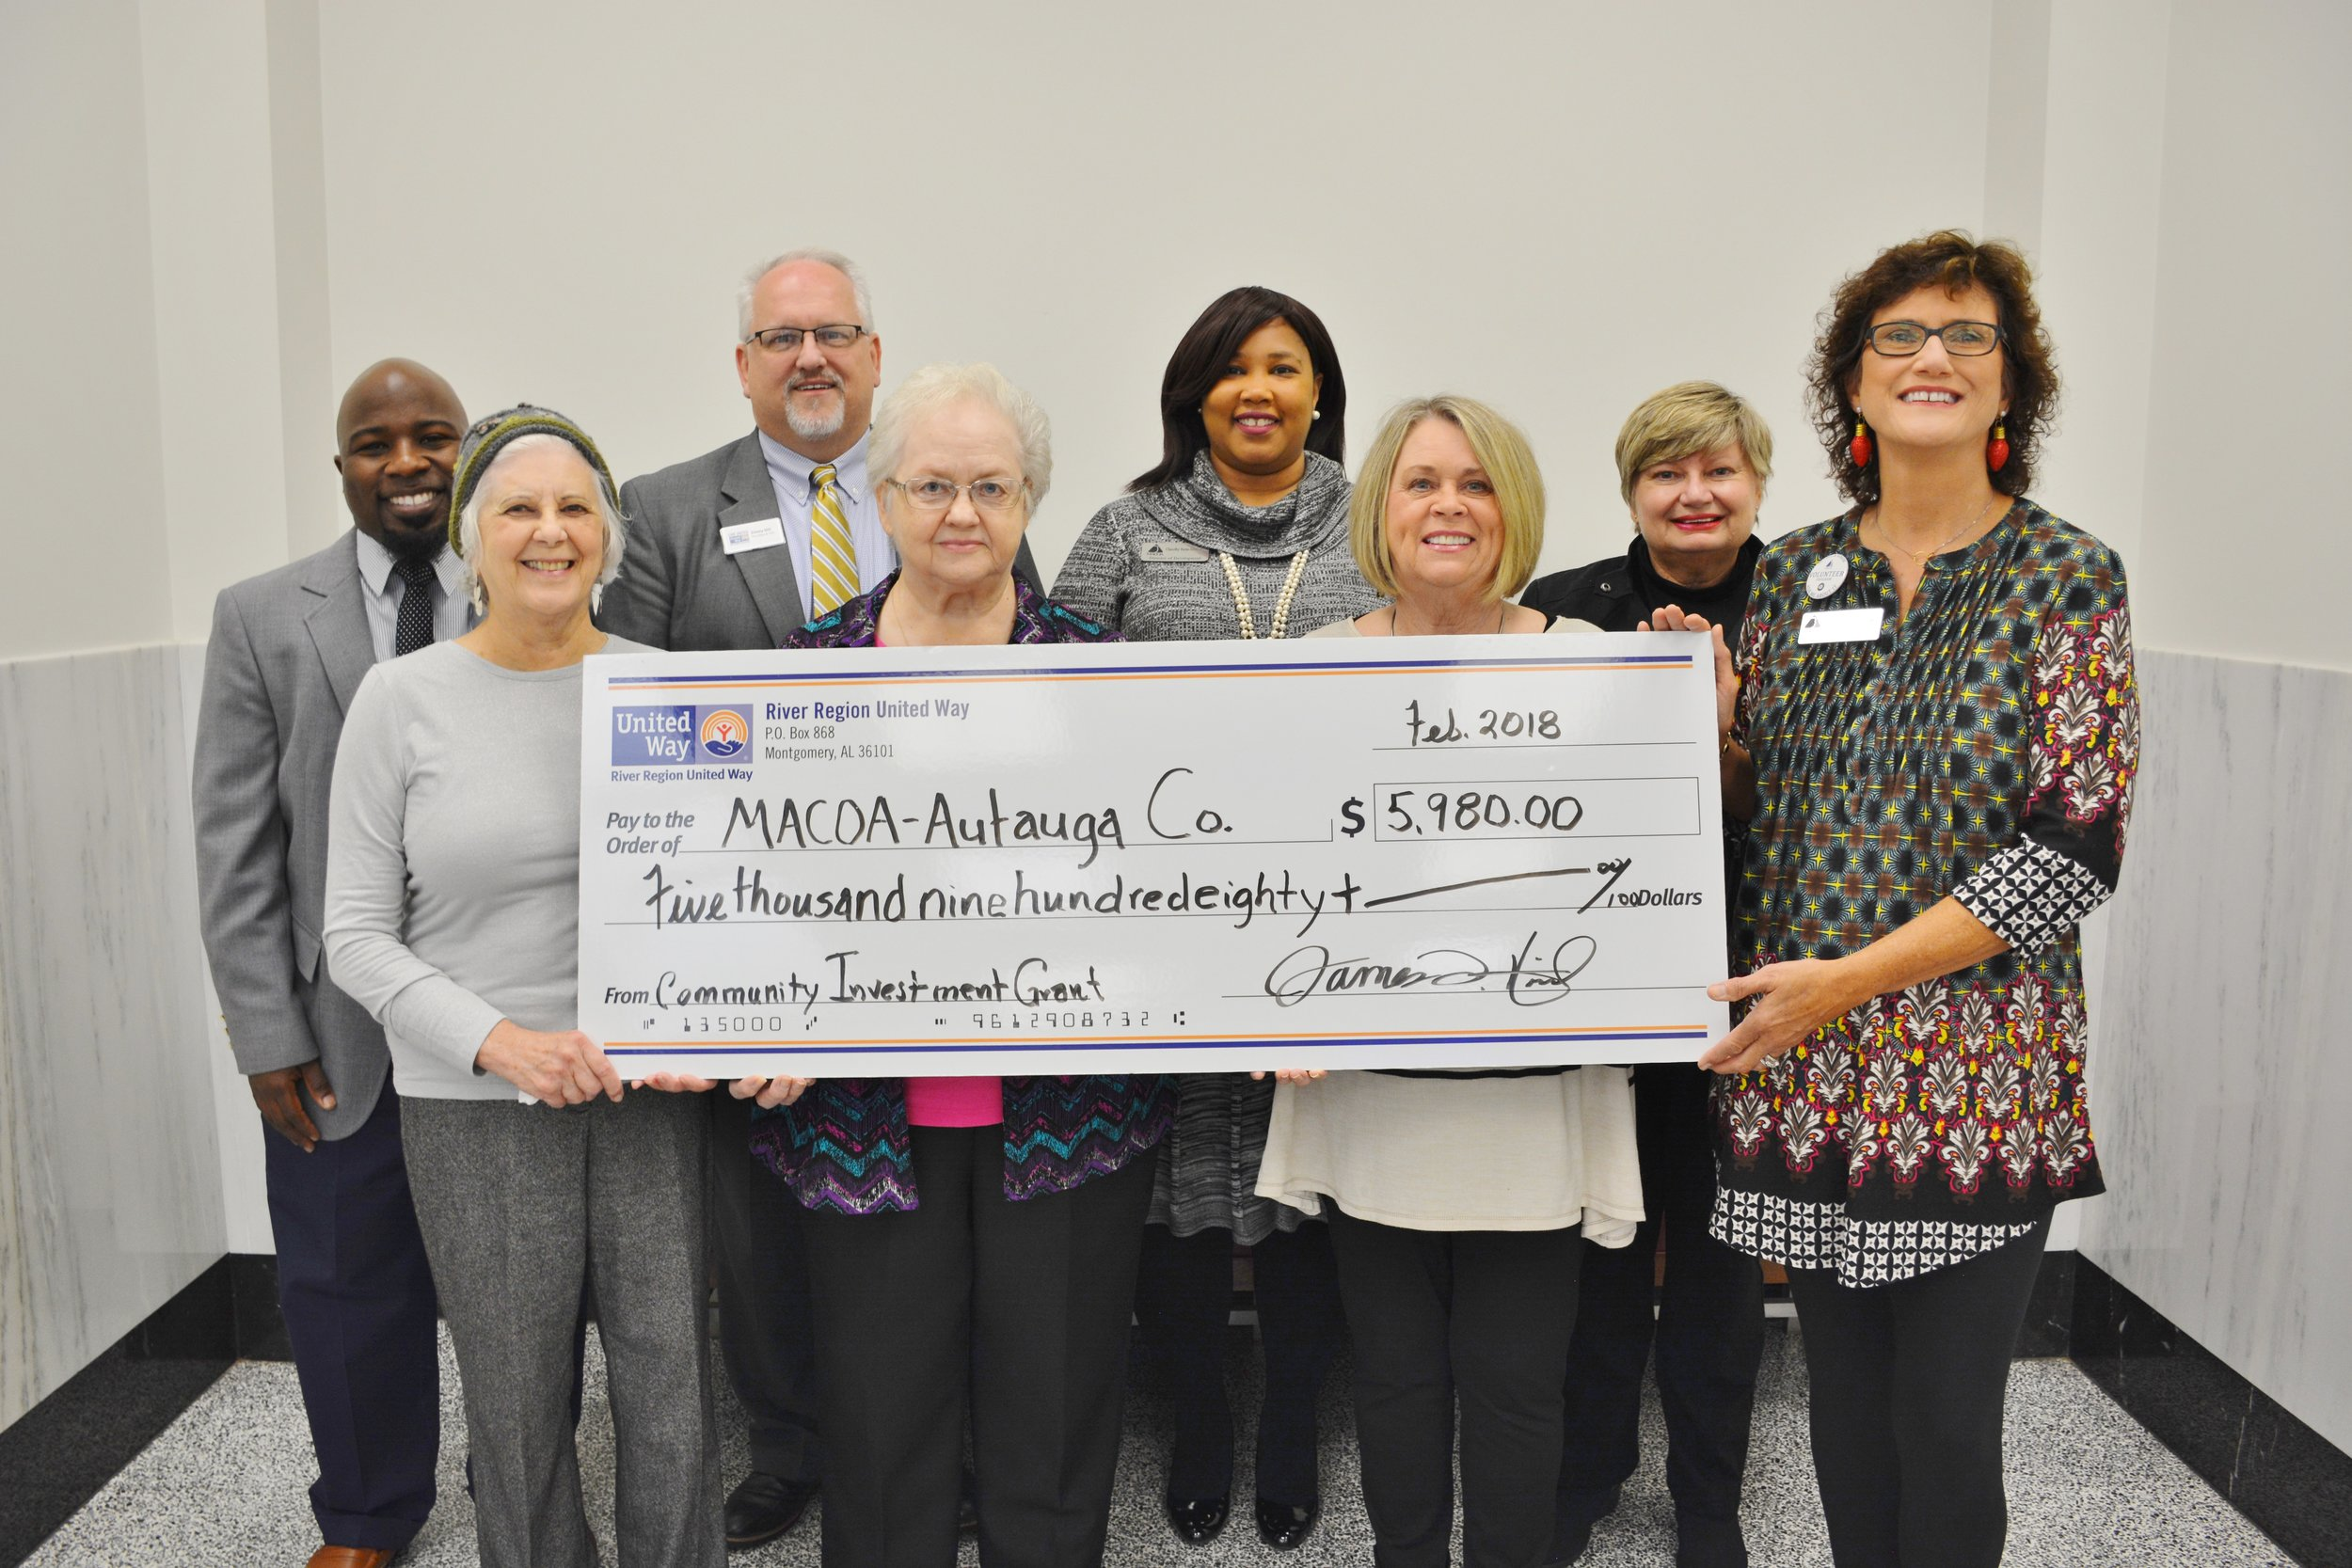 Autauga County United Way Community Investment Grant.JPG